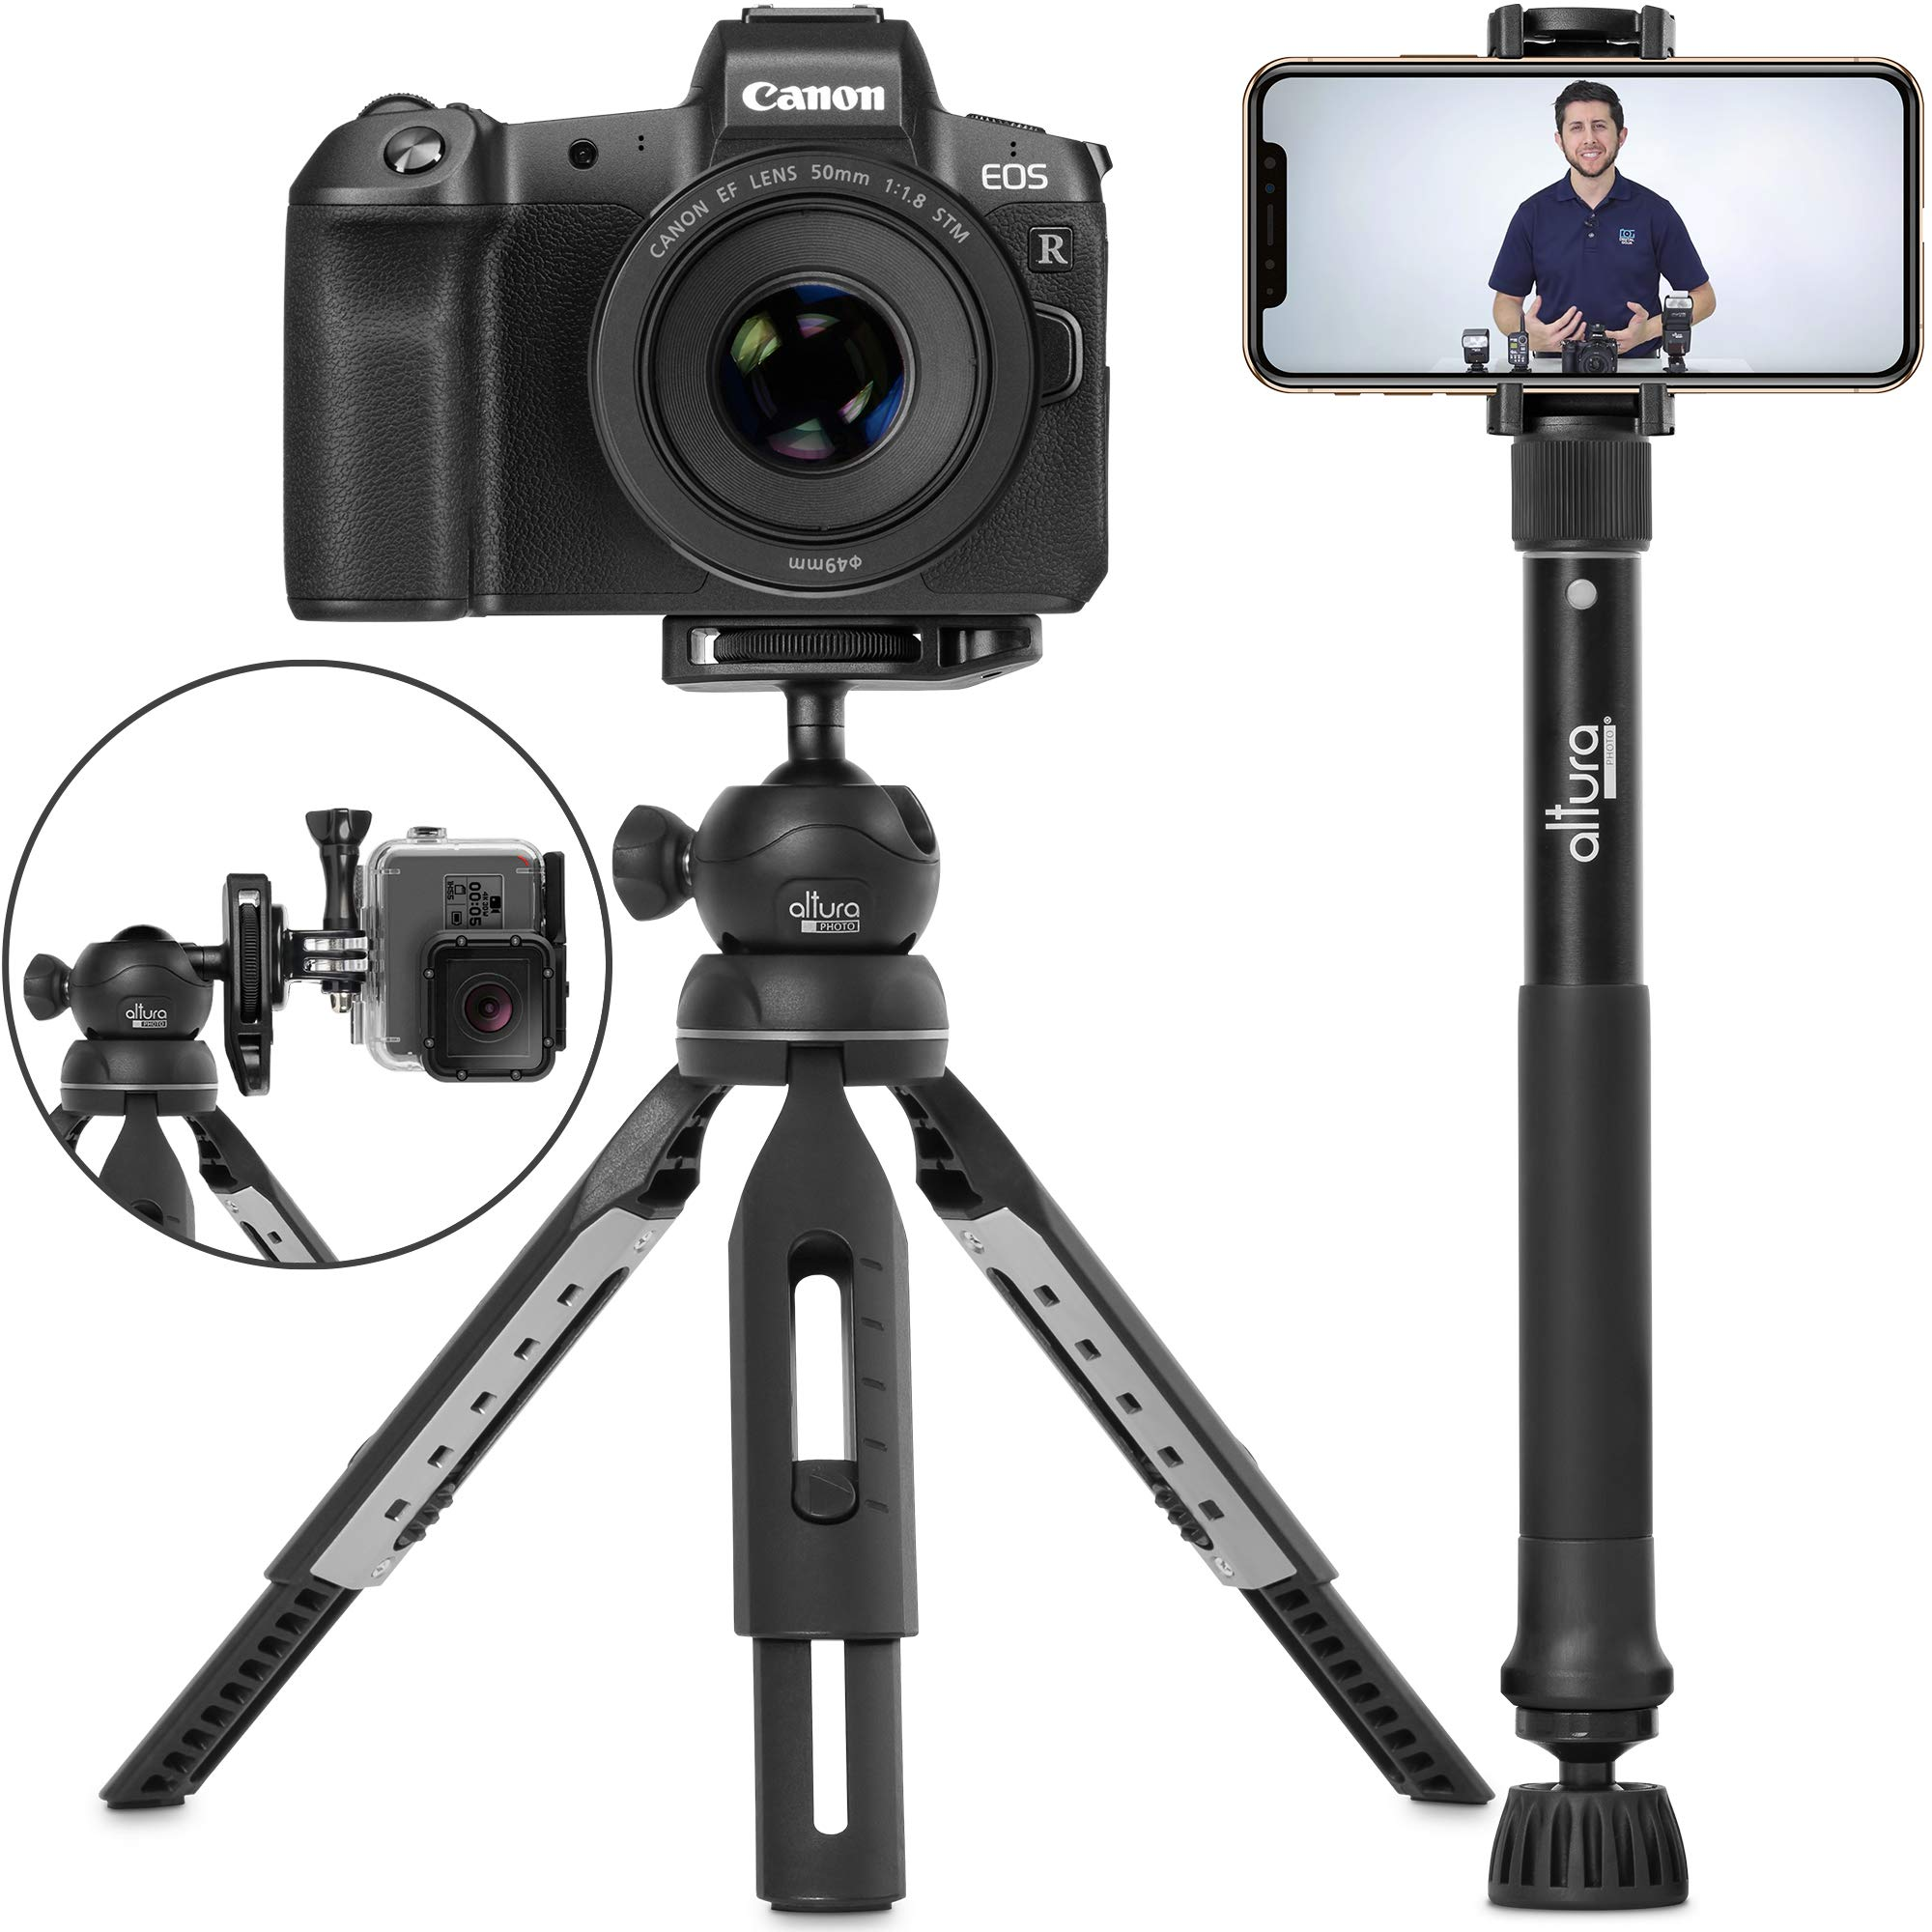 6 in 1 Monopod Tripod Kit by Altura Photo - Universal 55'' Telescoping DSLR Camera, GoPro, Cell Phone Holder Selfie Stick with Tripod Base, 360 Ball Head and Carry Bag